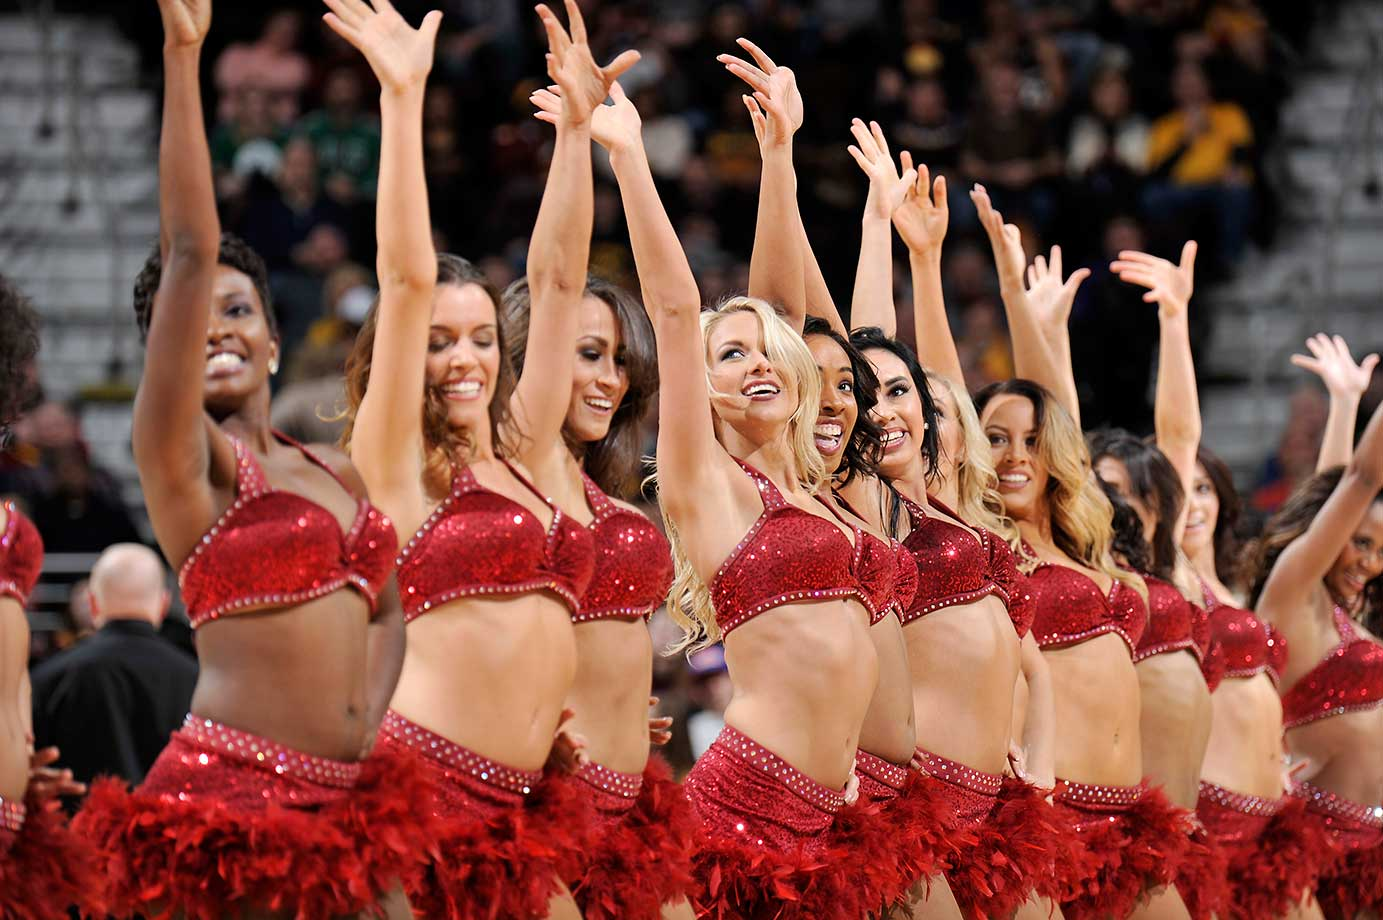 The Cleveland Cavaliers dance team performs during the game against the Boston Celtics.